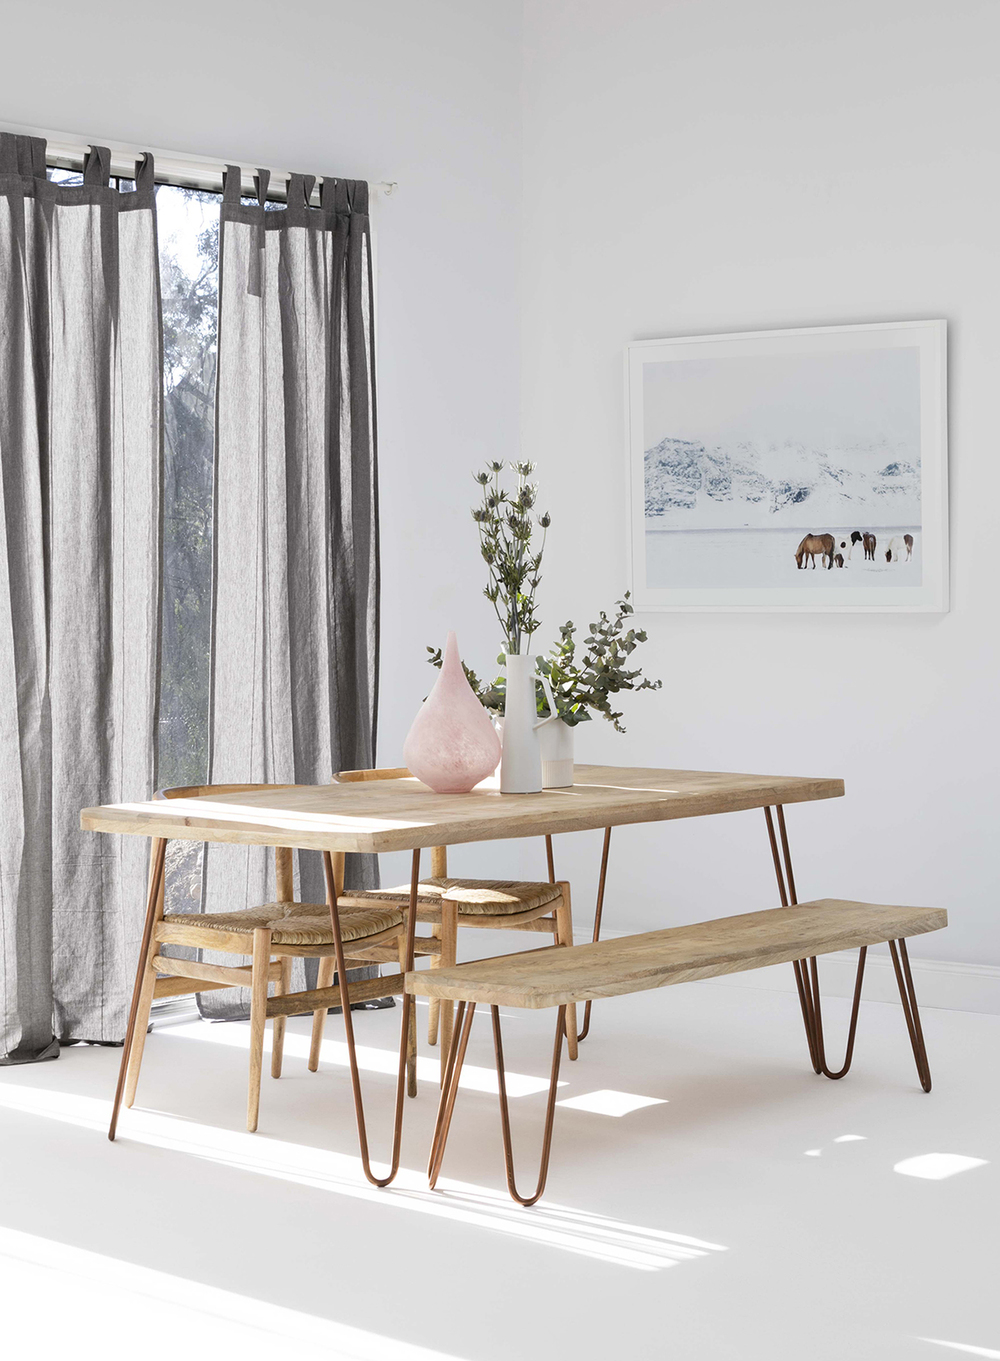 I Have To Say, This Is OZ Design Furnitureu0027s Hottest Collection To Date U2013  So Many Beautiful Pieces Of Furniture And Homewares That Suit The Very  On Trend ...